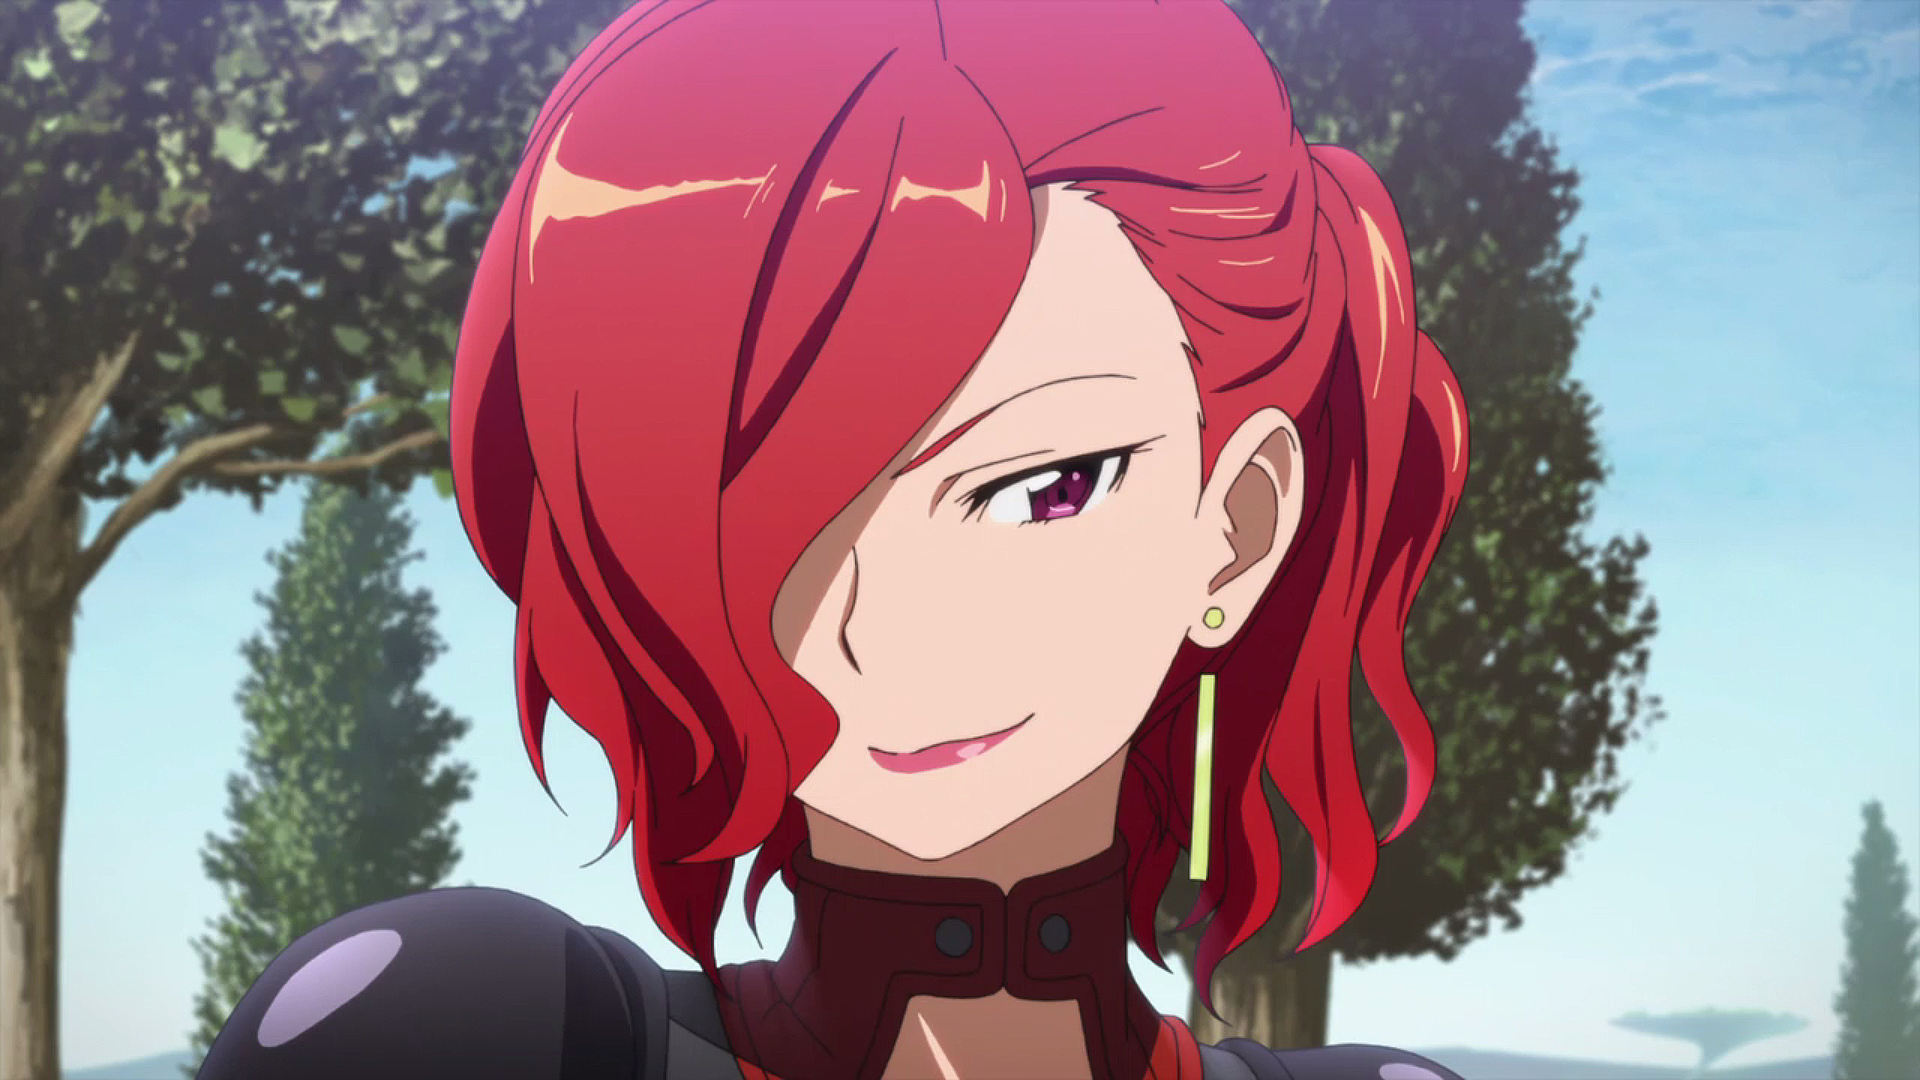 Red Hair Anime Girl With Sword: FANDOM Powered By Wikia